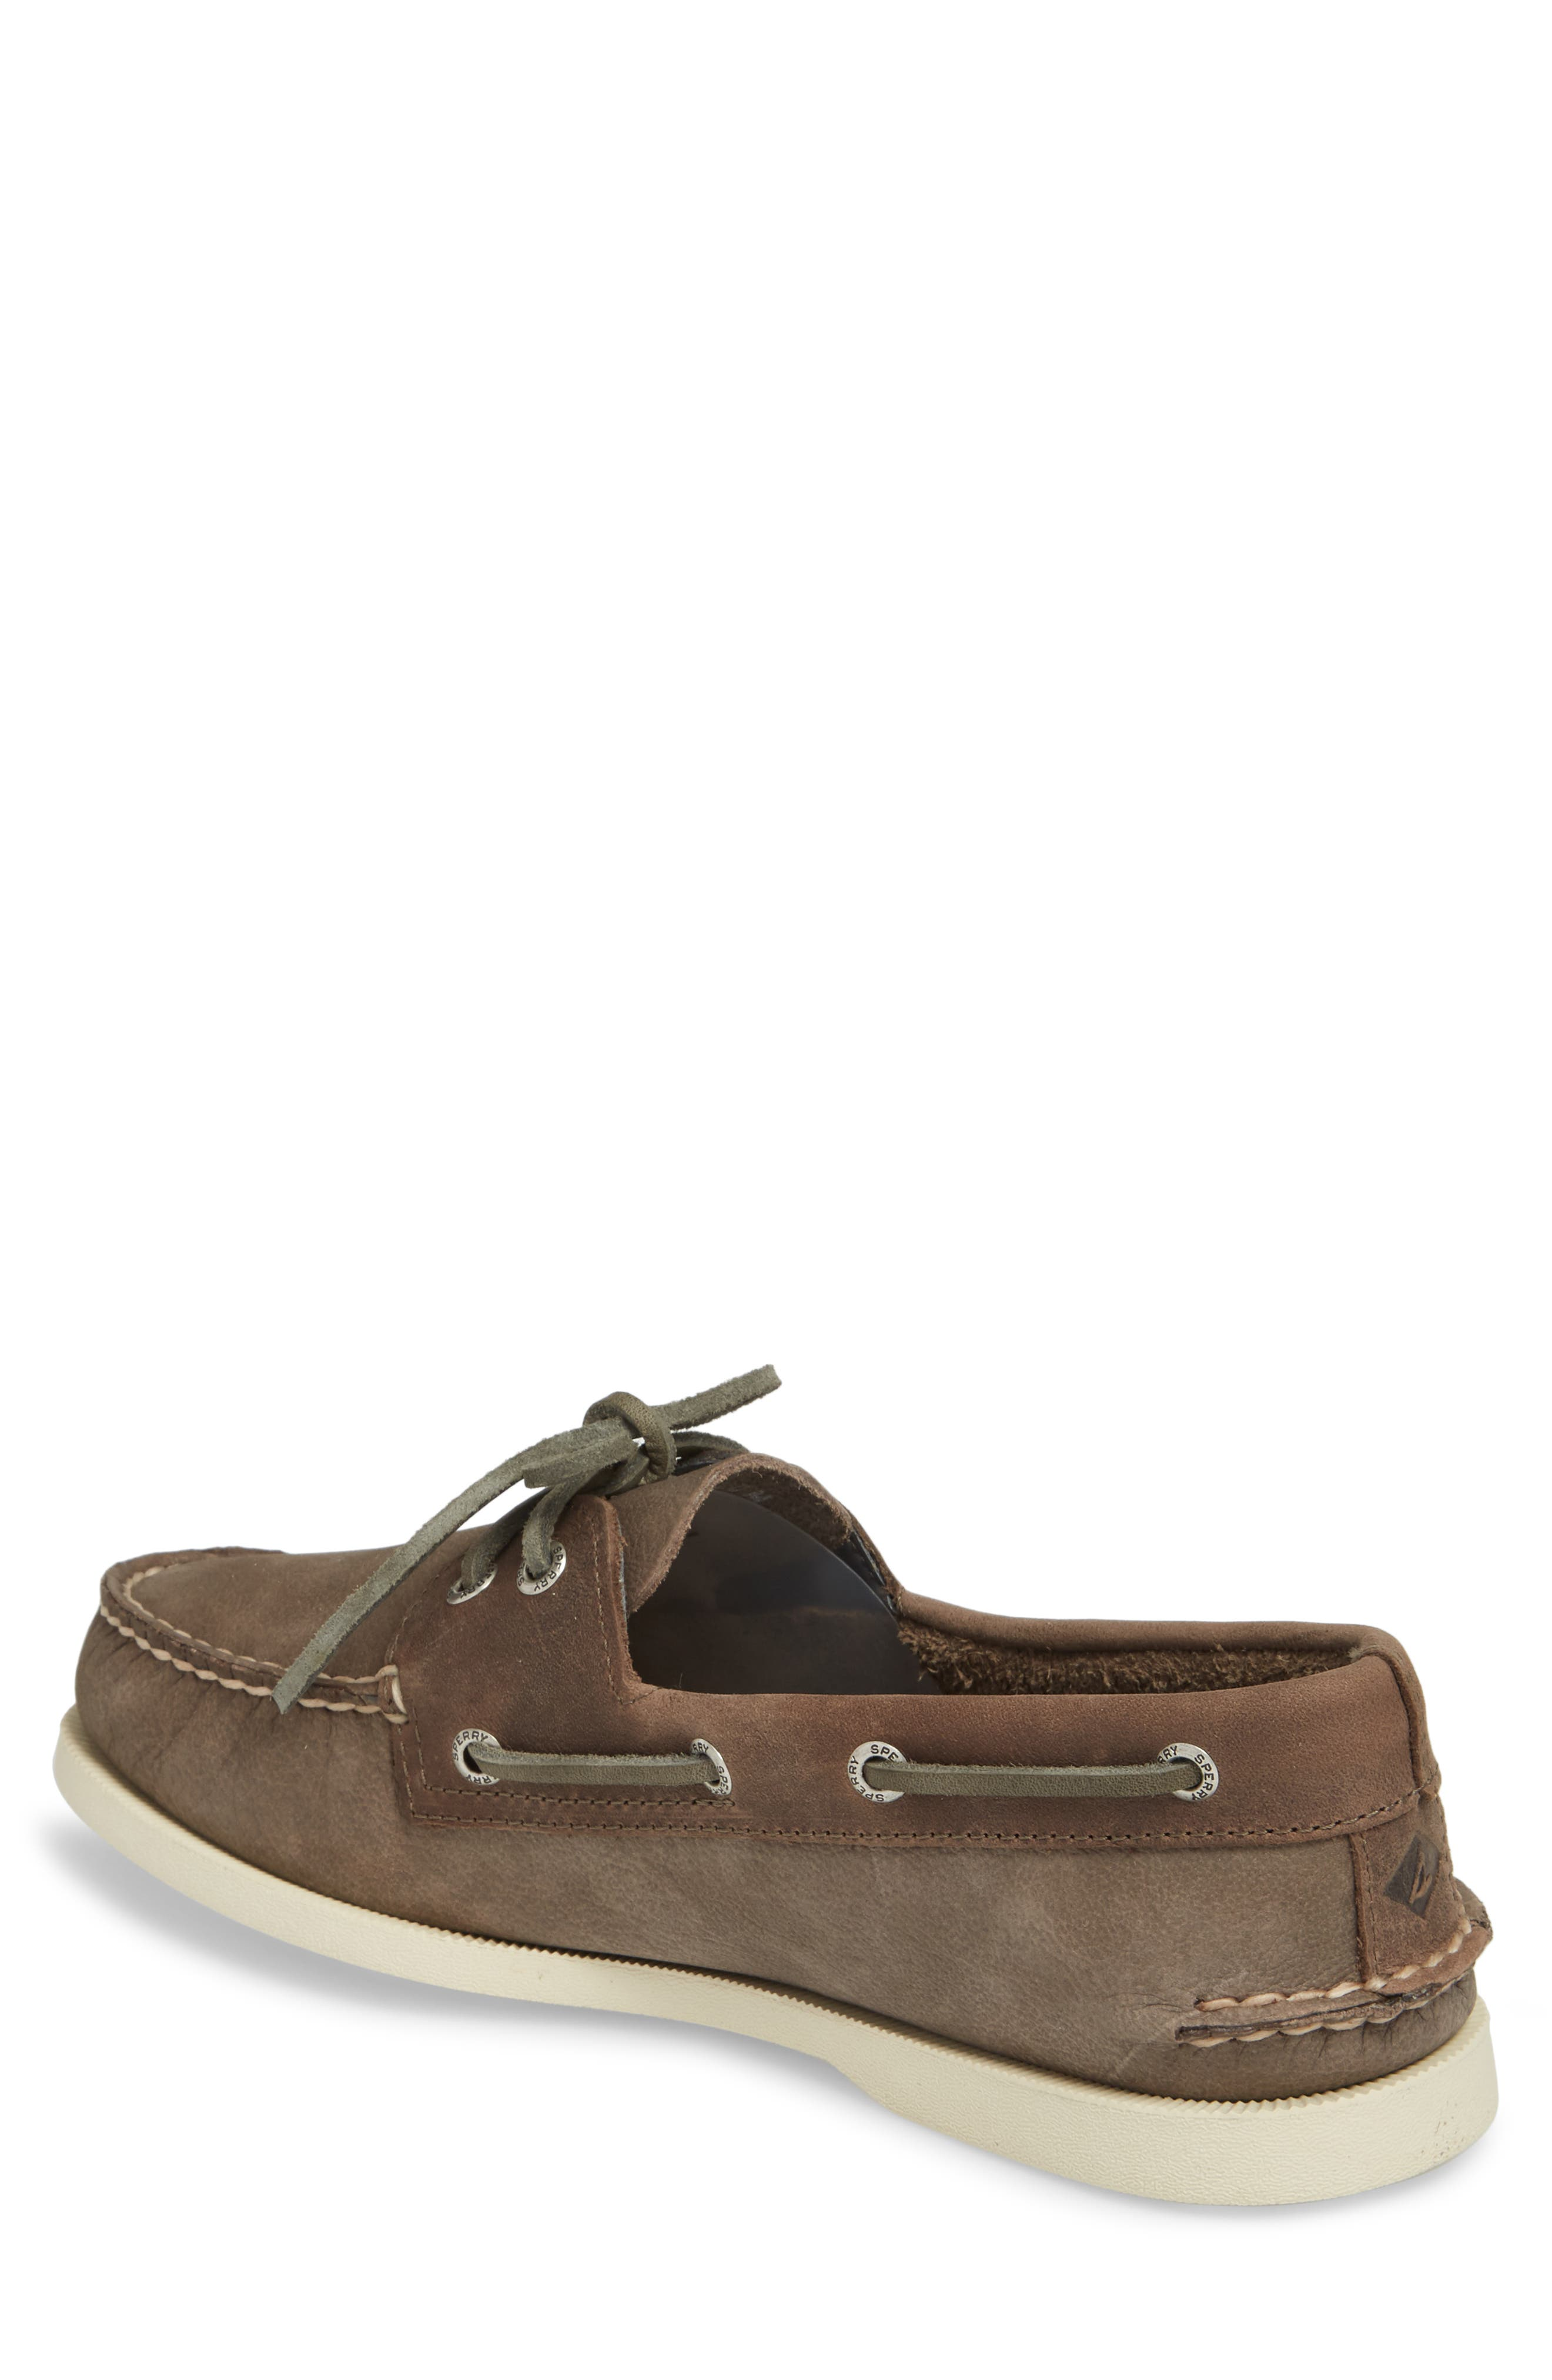 Authentic Original Two-Eye Boat Shoe,                             Alternate thumbnail 2, color,                             GREY/ CHARCOAL LEATHER